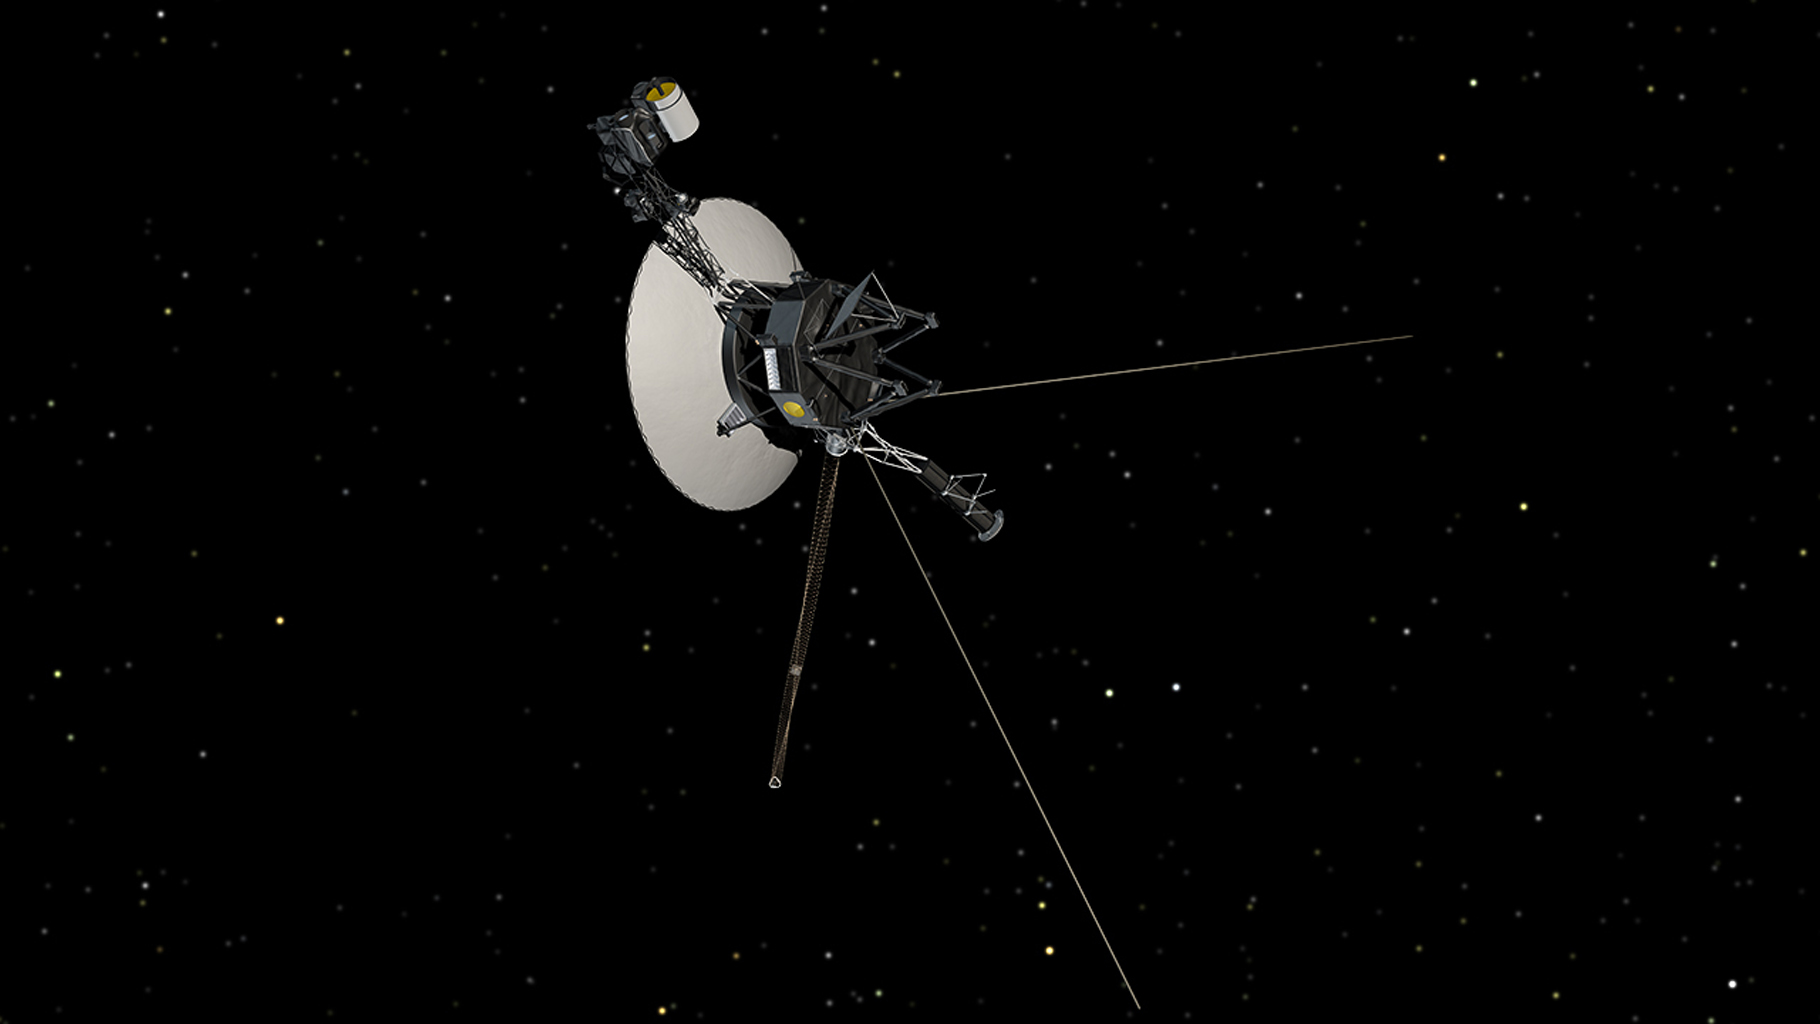 Astronomy on Tap: The Voyager Probes